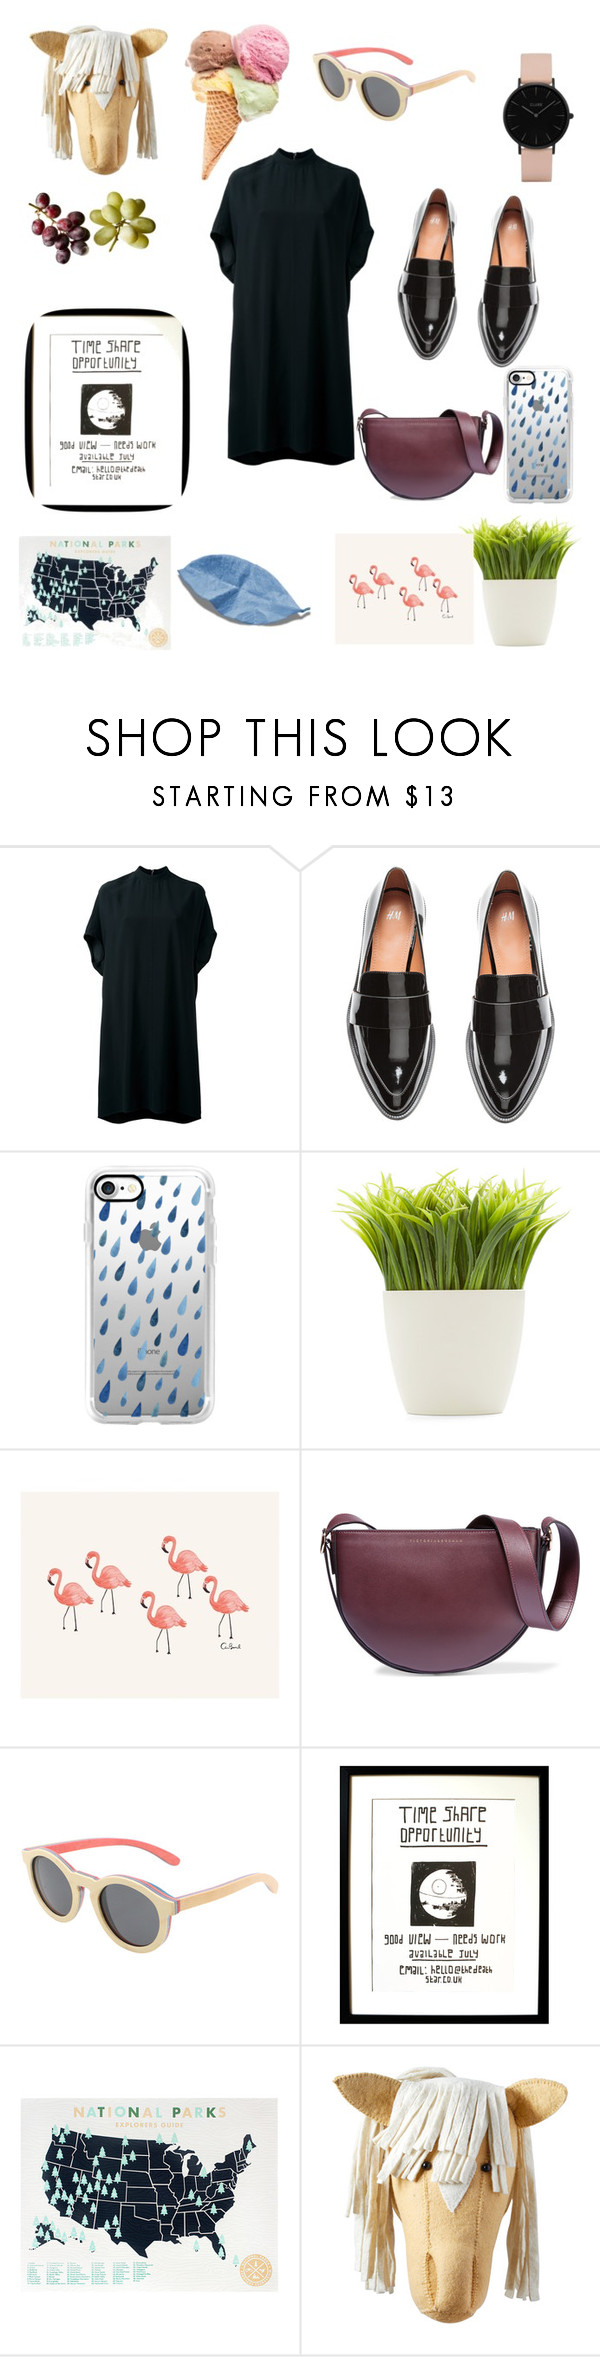 """Black"" by haanifah13 ❤ liked on Polyvore featuring Rick Owens, H&M, Casetify, Dot & Bo, Rifle Paper Co, Victoria Beckham, Triple Graces, Disney, Fiona Walker and Topshop"